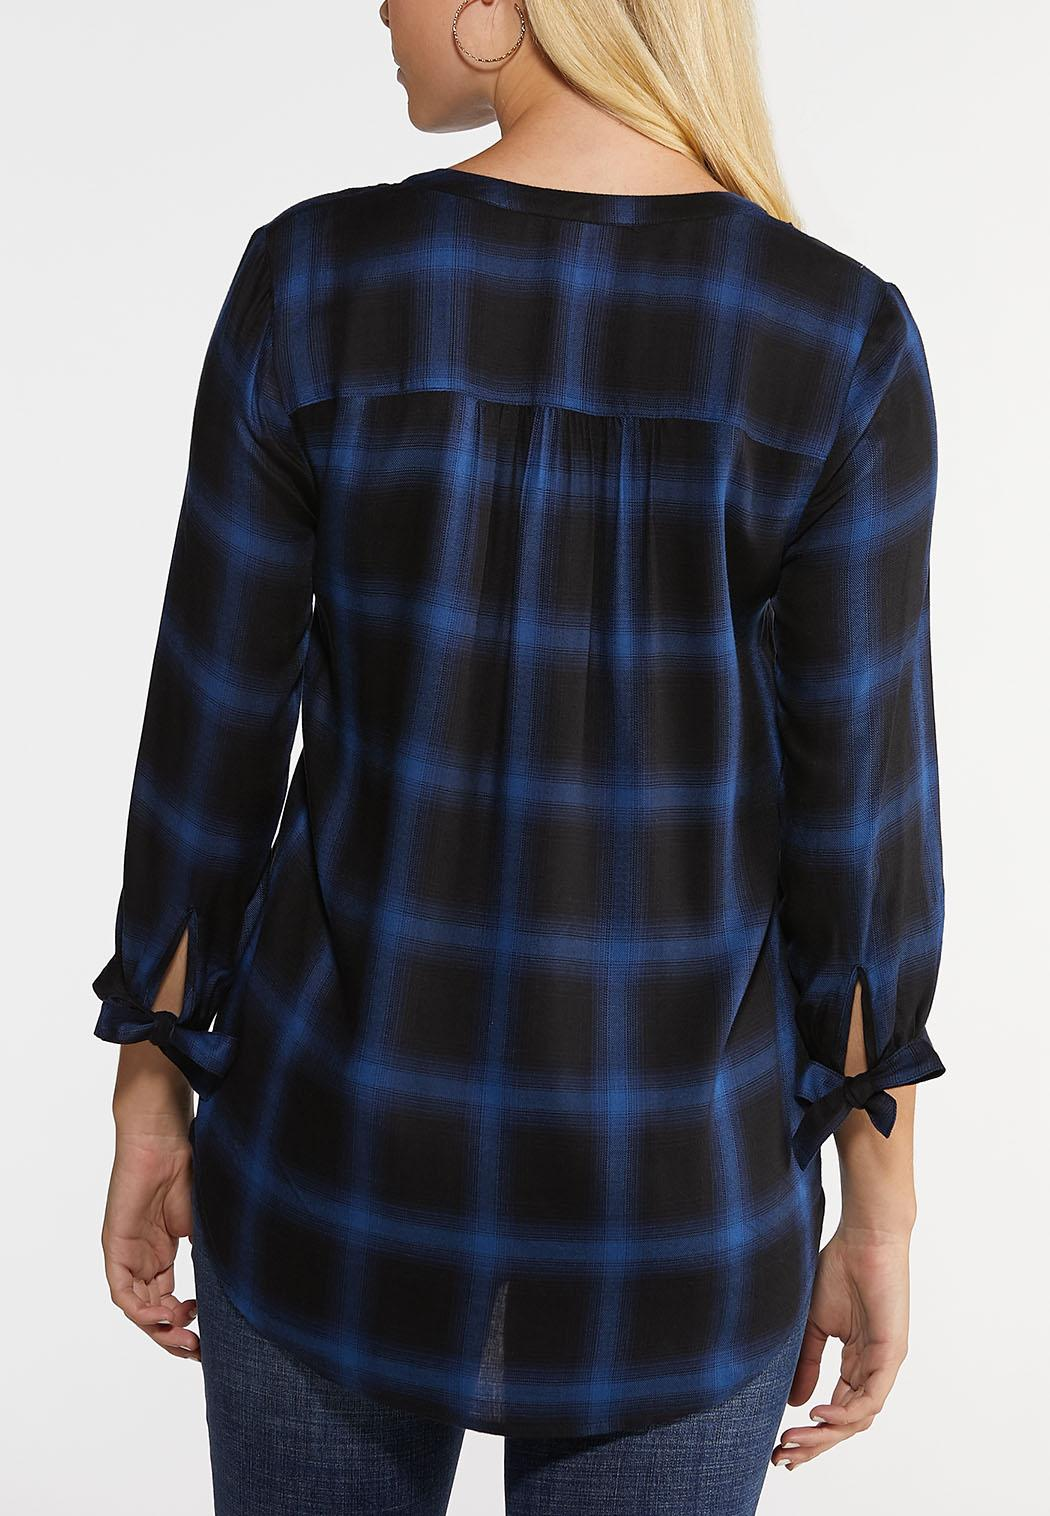 Black And Blue Plaid Top (Item #44004299)